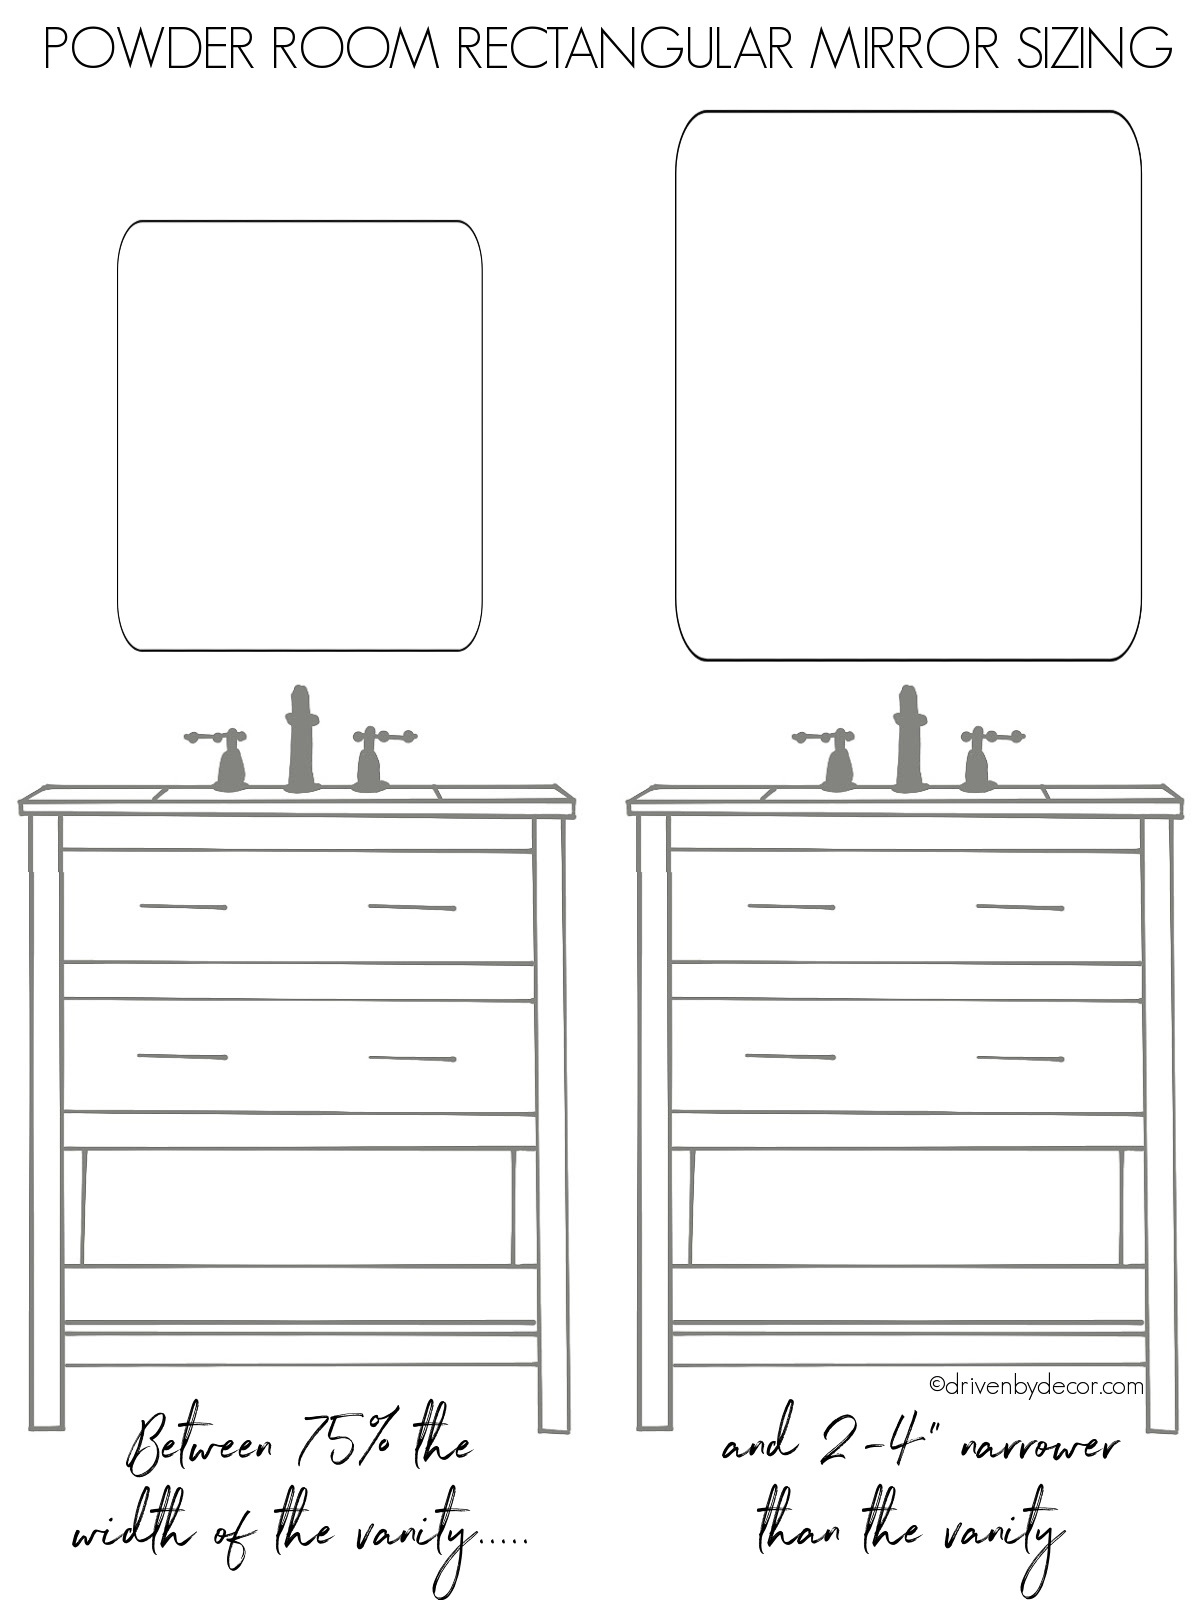 Tips for how big of a rectangular mirror to use over a powder room vanity